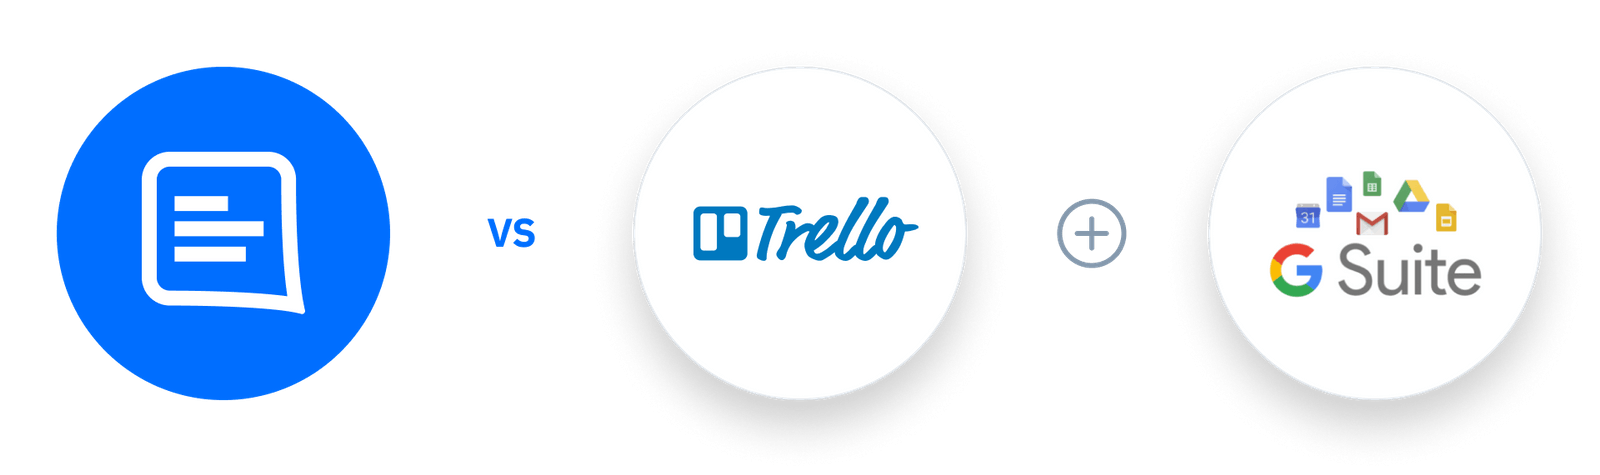 GC logo Vs Trello + G Suite logos